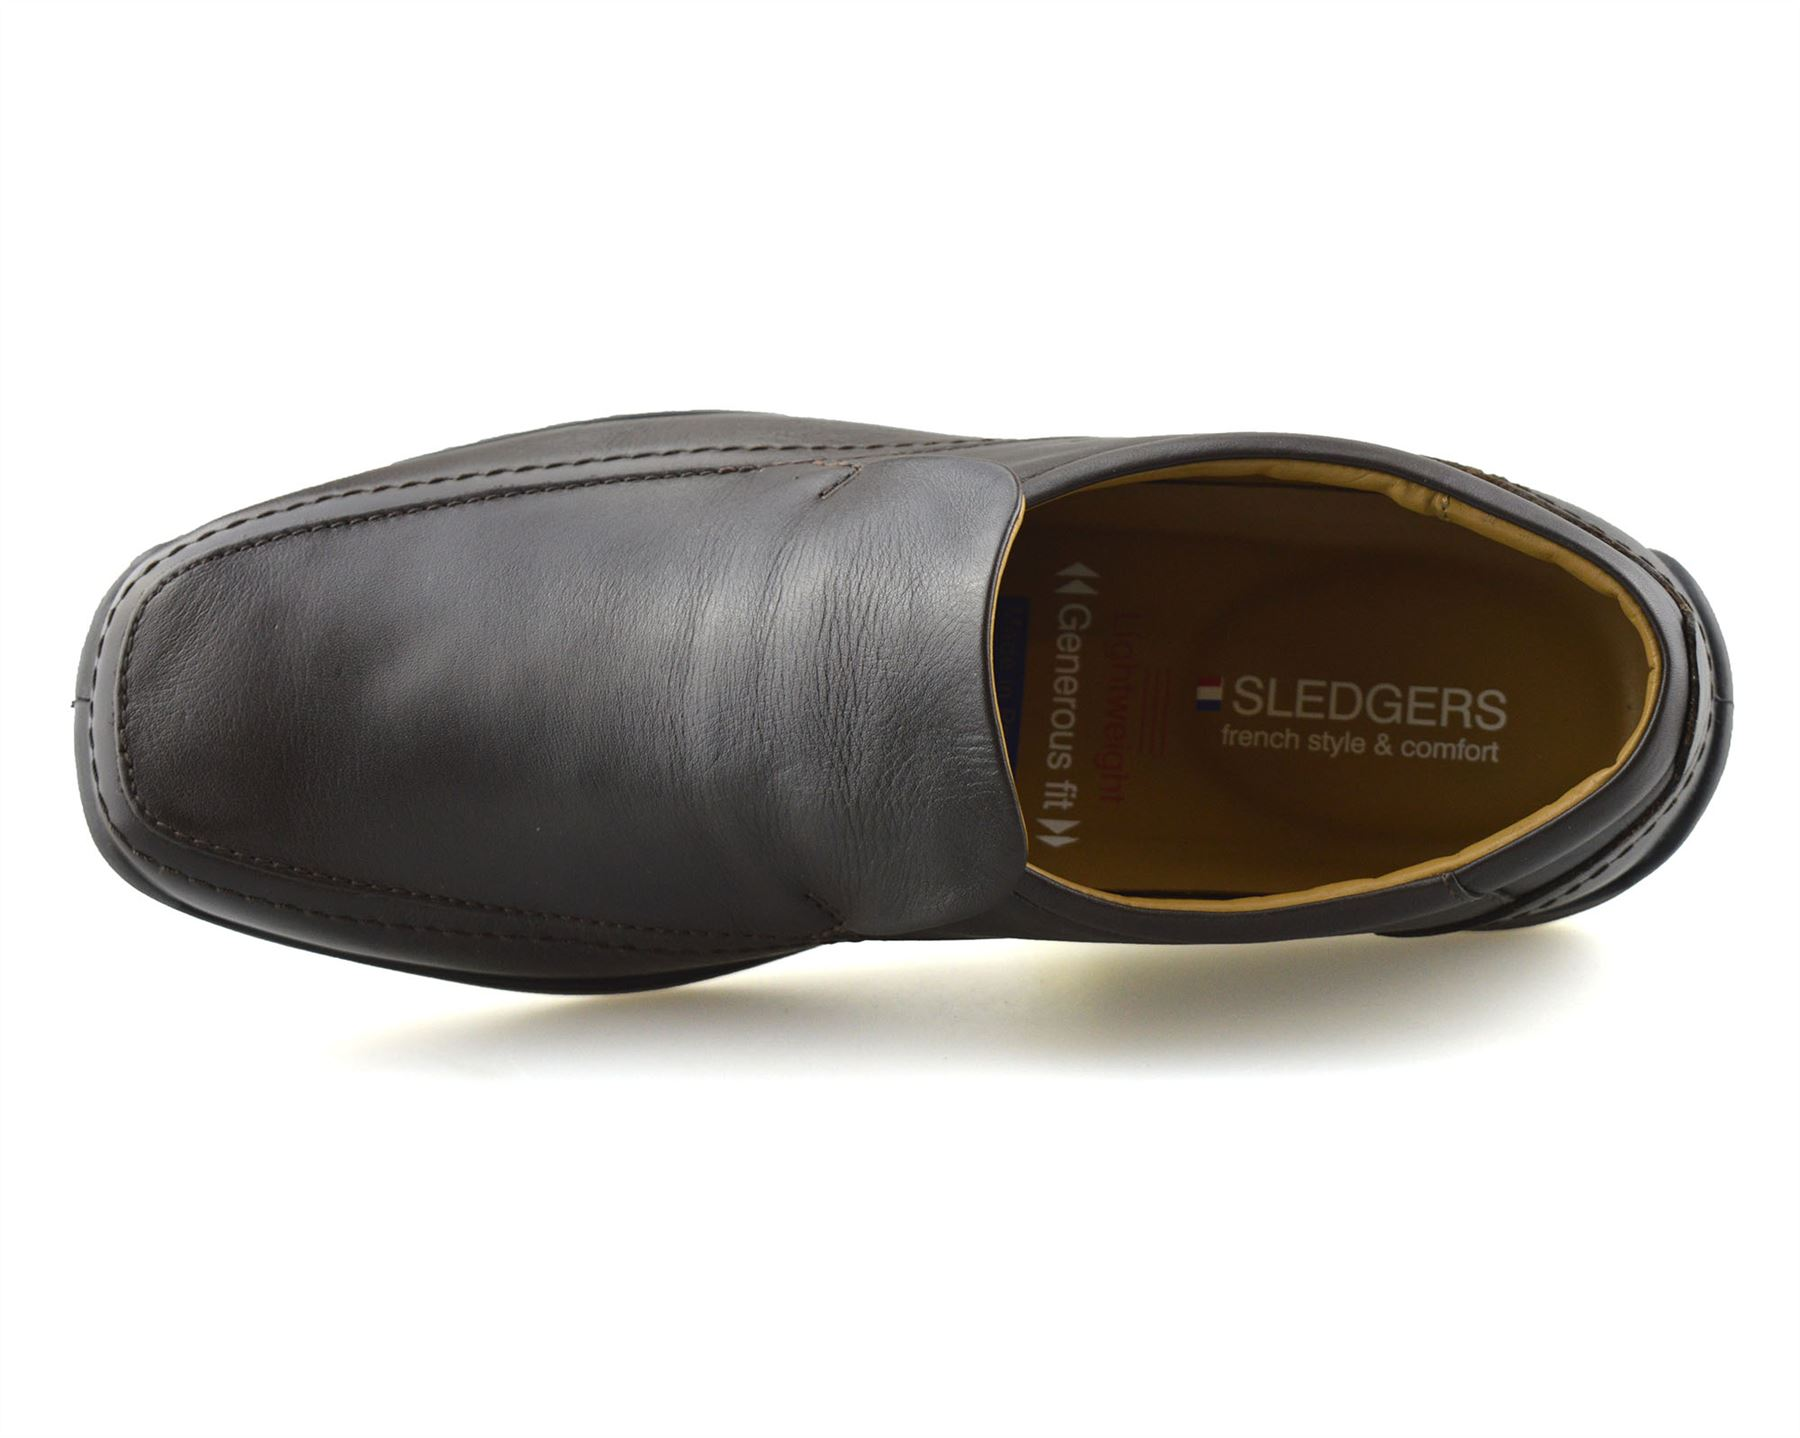 Mens-New-Leather-Casual-Slip-On-Walking-Loafers-Moccasin-Driving-Boat-Shoes-Size thumbnail 10